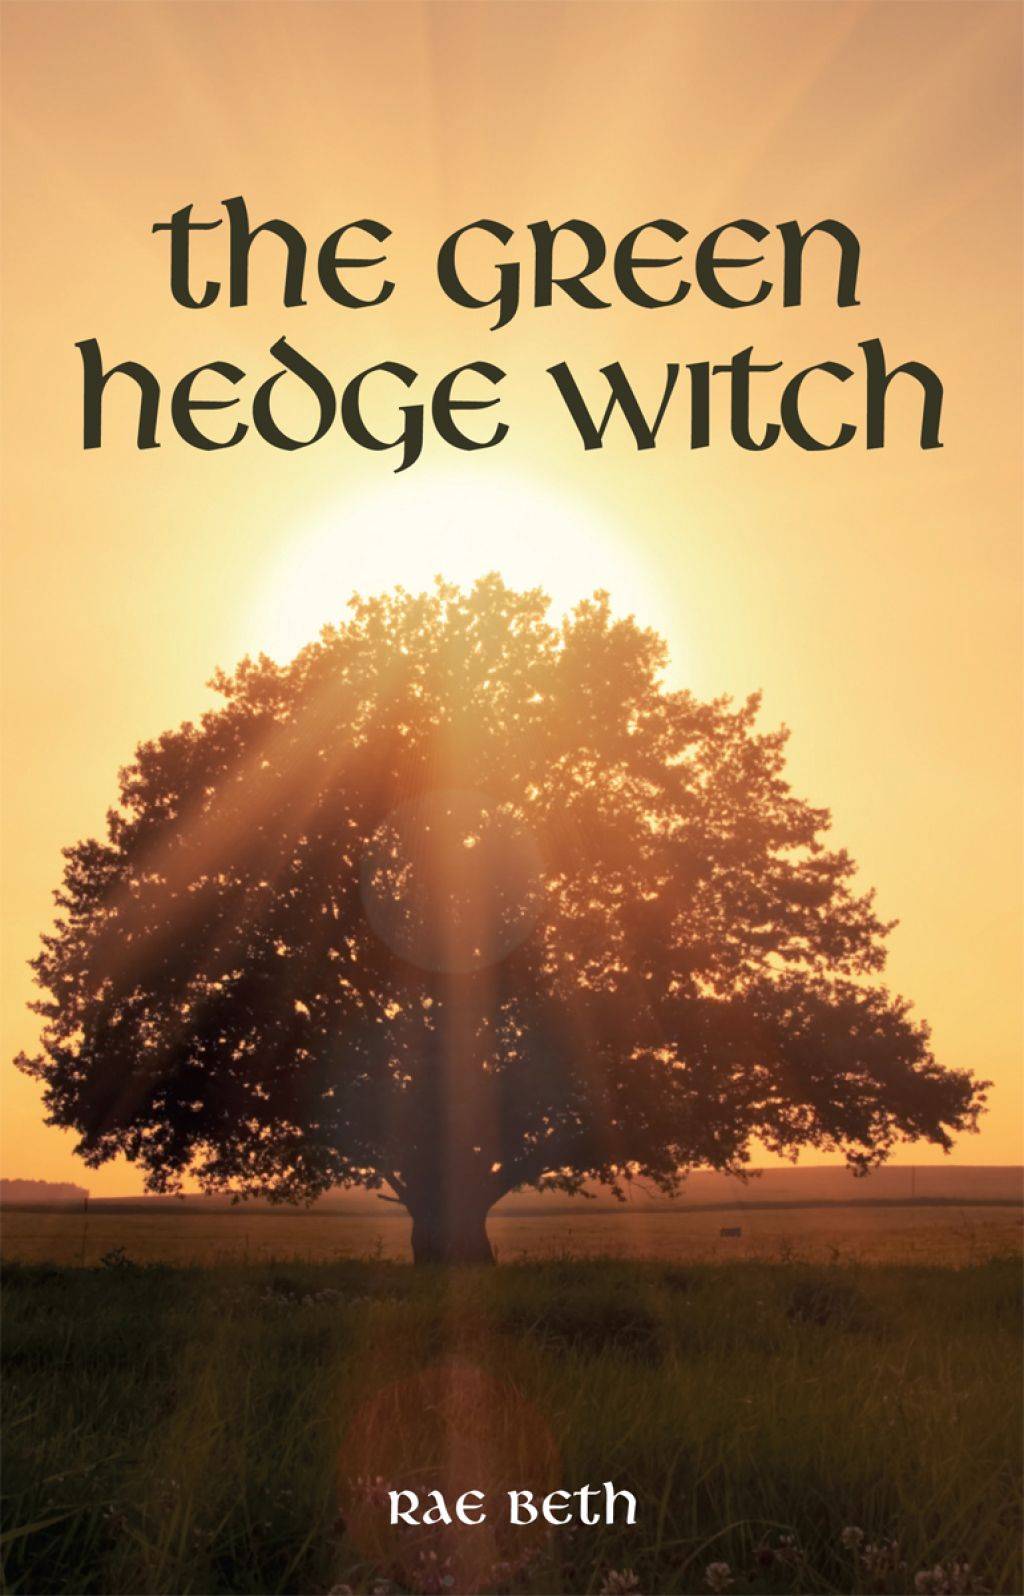 The Green Hedge Witch (eBook) in 2019 | Products | Hedge